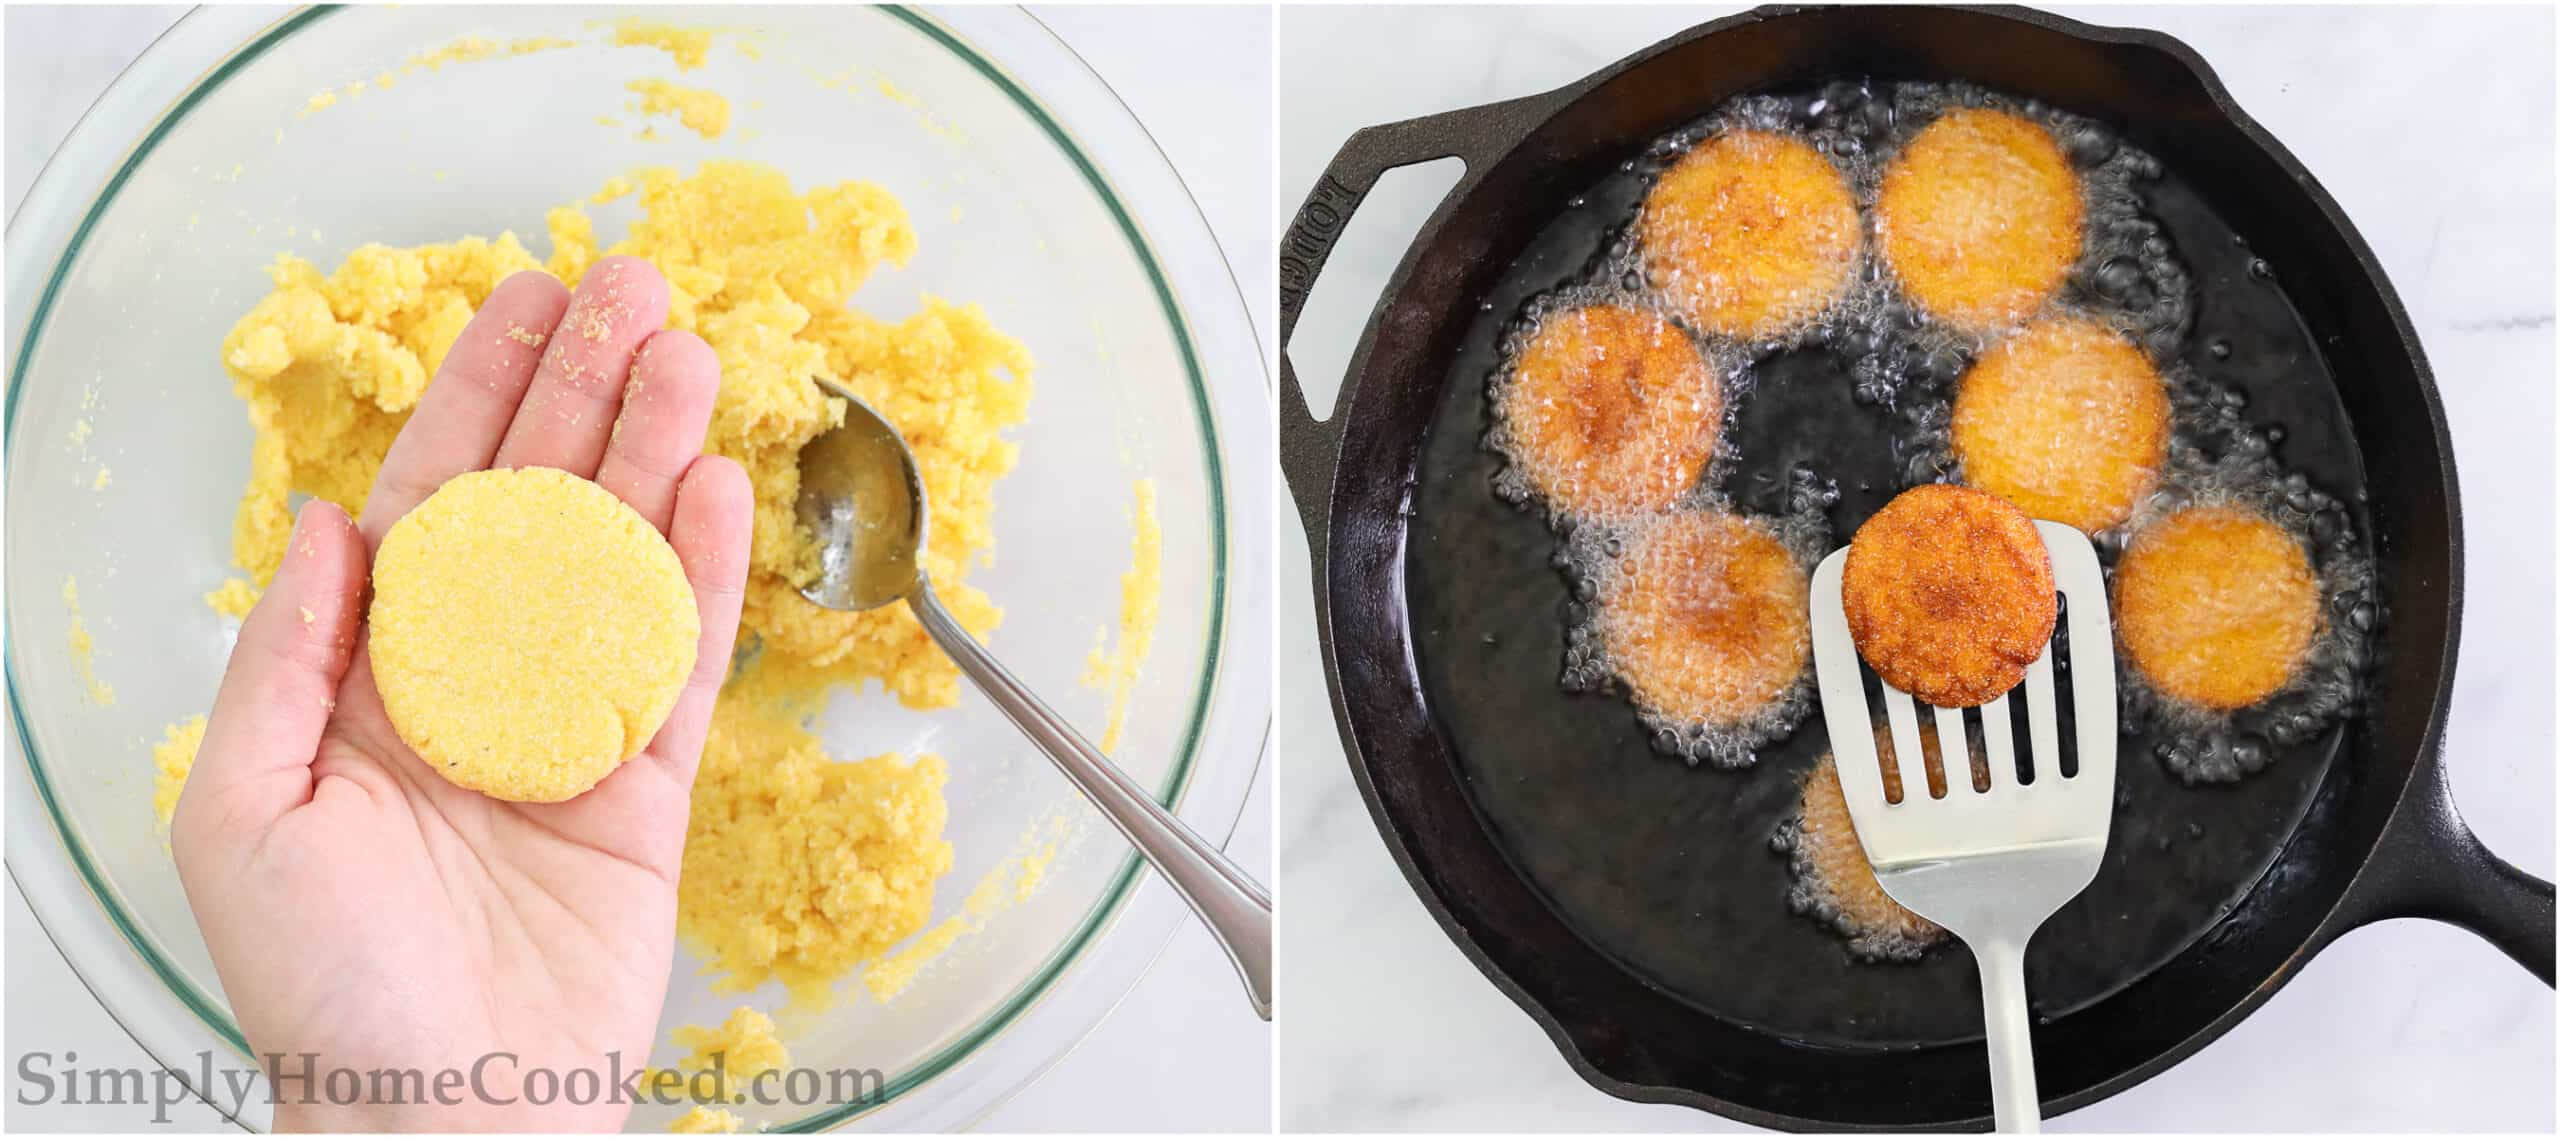 Steps to make Southern Hot Water Cornbread, including forming the batter into patties and then frying them to a golden brown color.